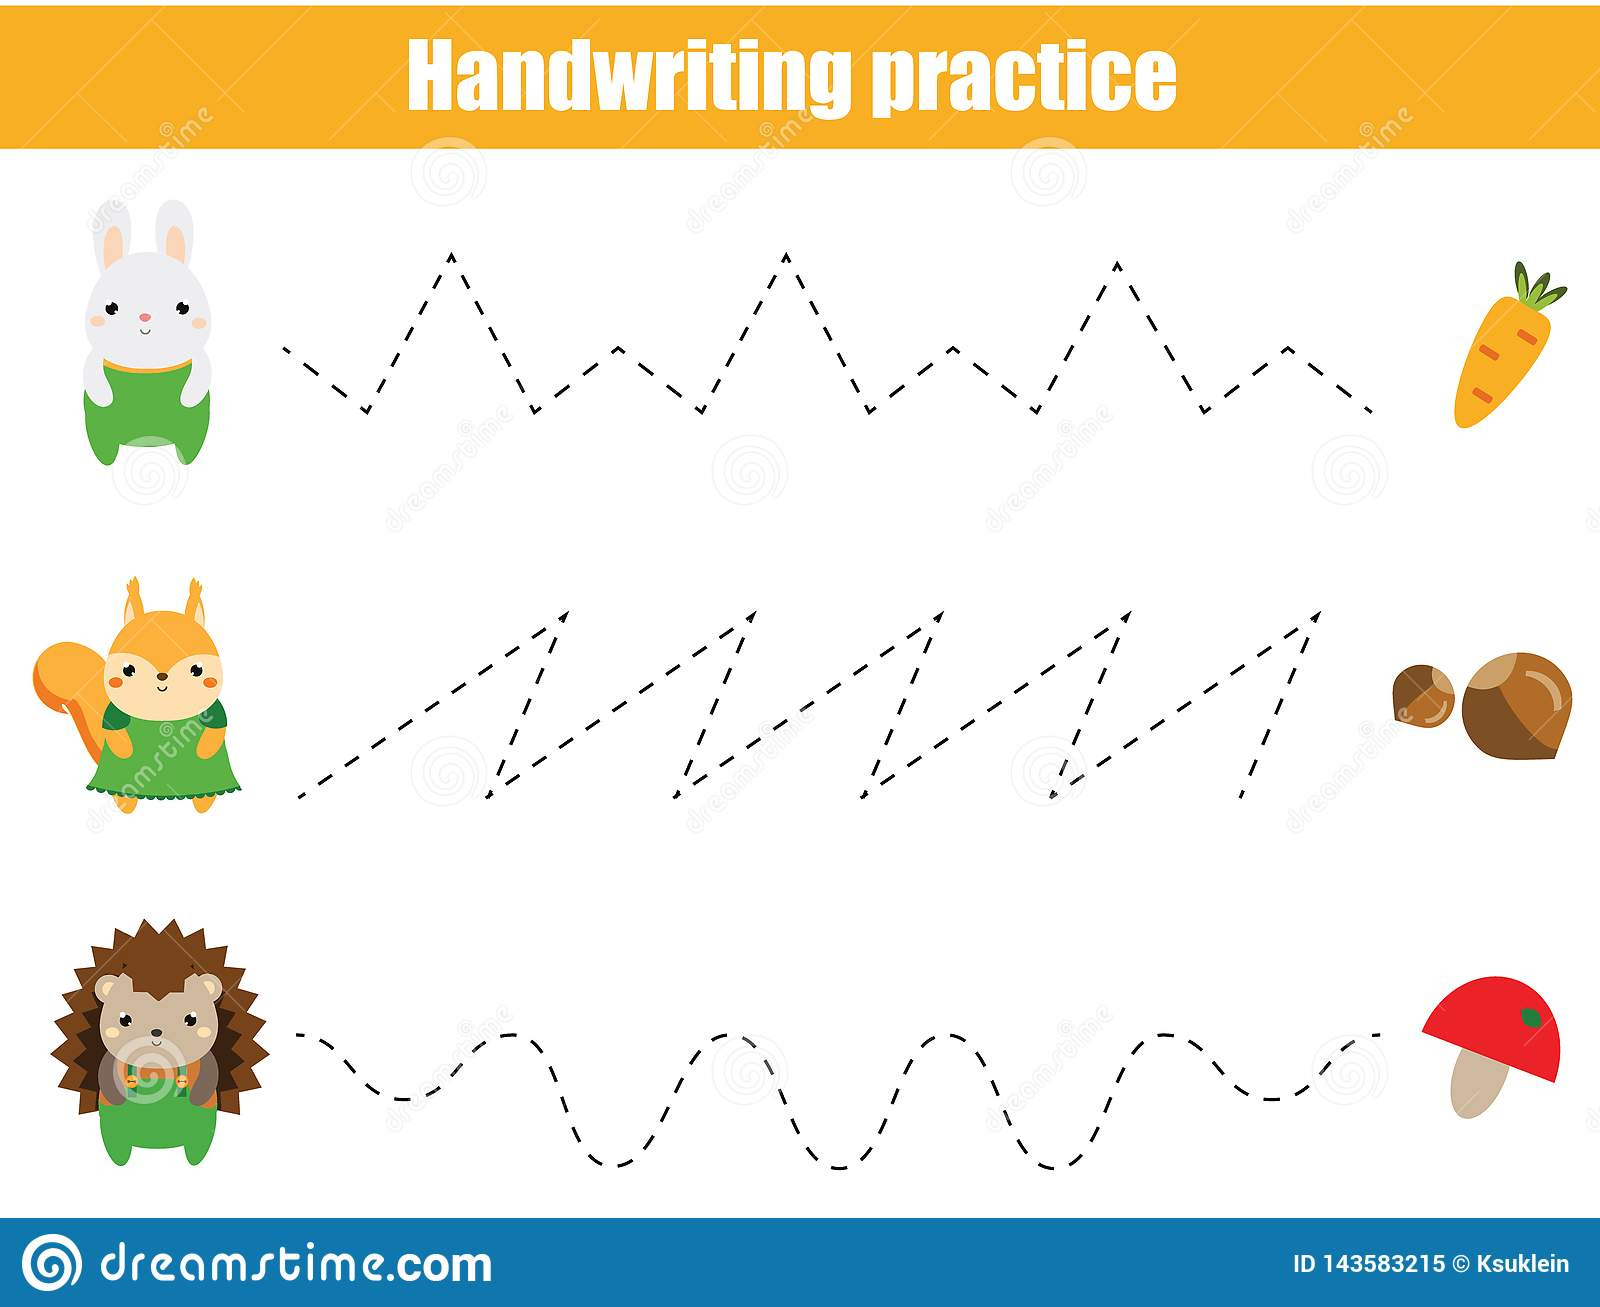 Preschool Handwriting Practice Sheet. Educational Children